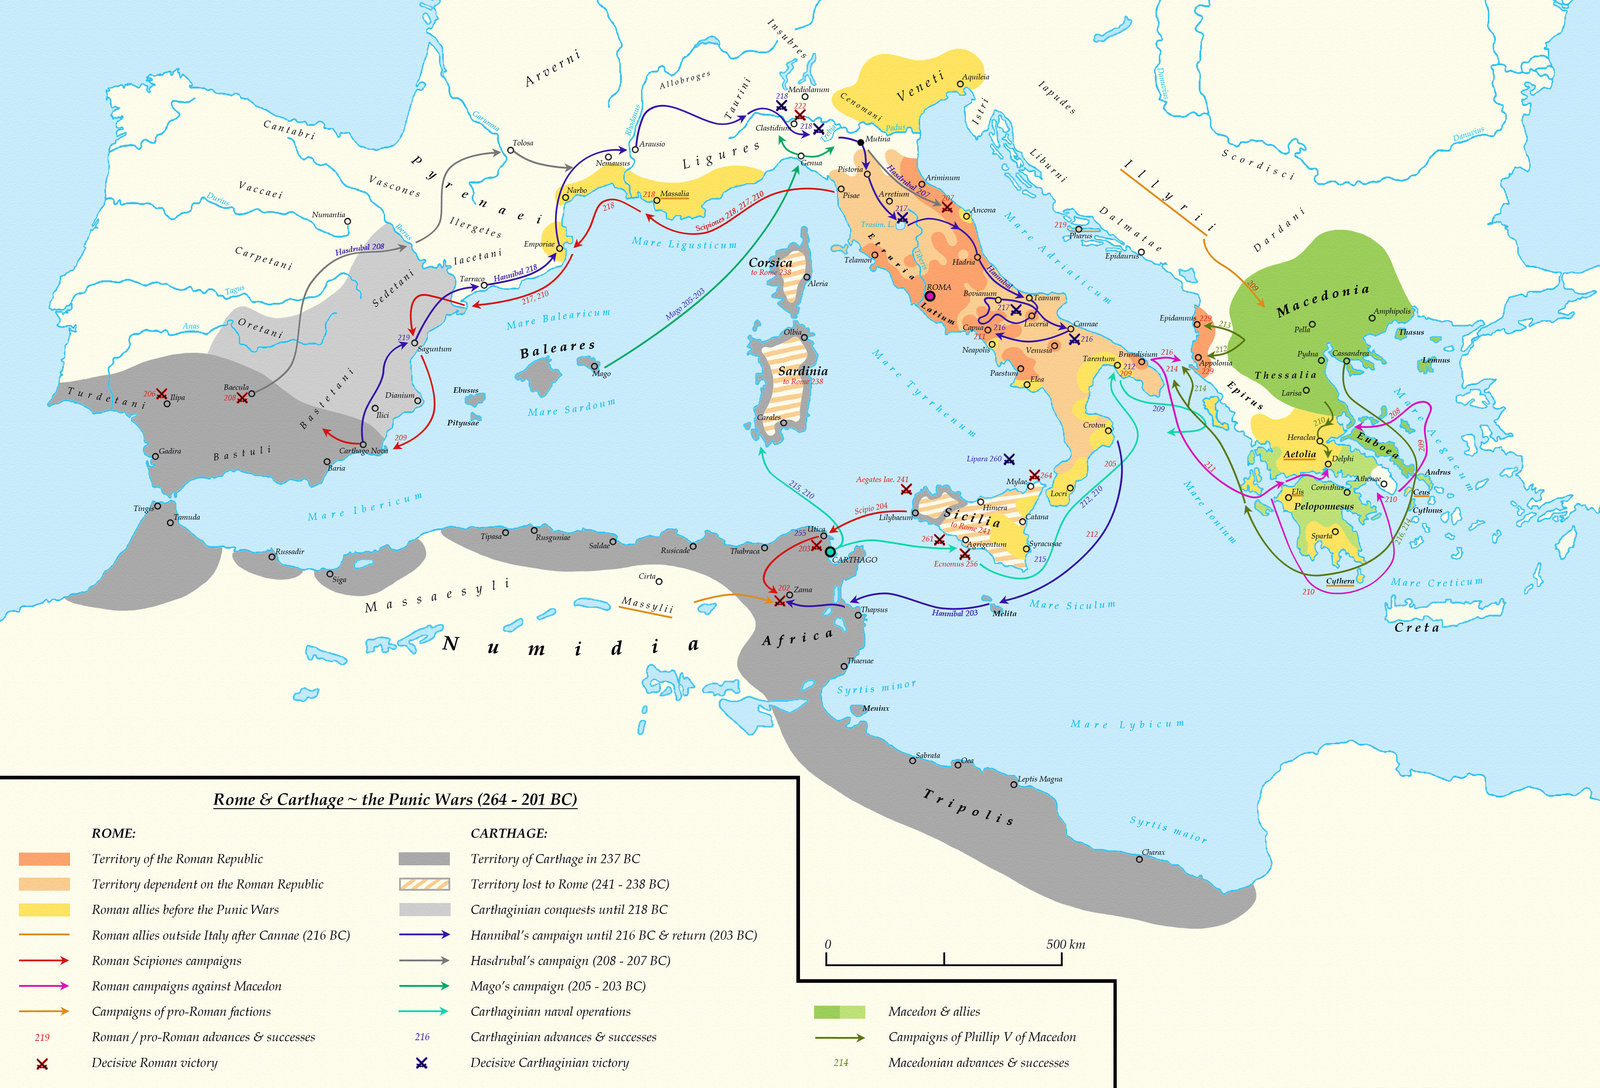 MAP Excellent rome_and_carthage___the_punic_wars__264___201_bc__by_undevicesimus-d5f2fuw.jpg